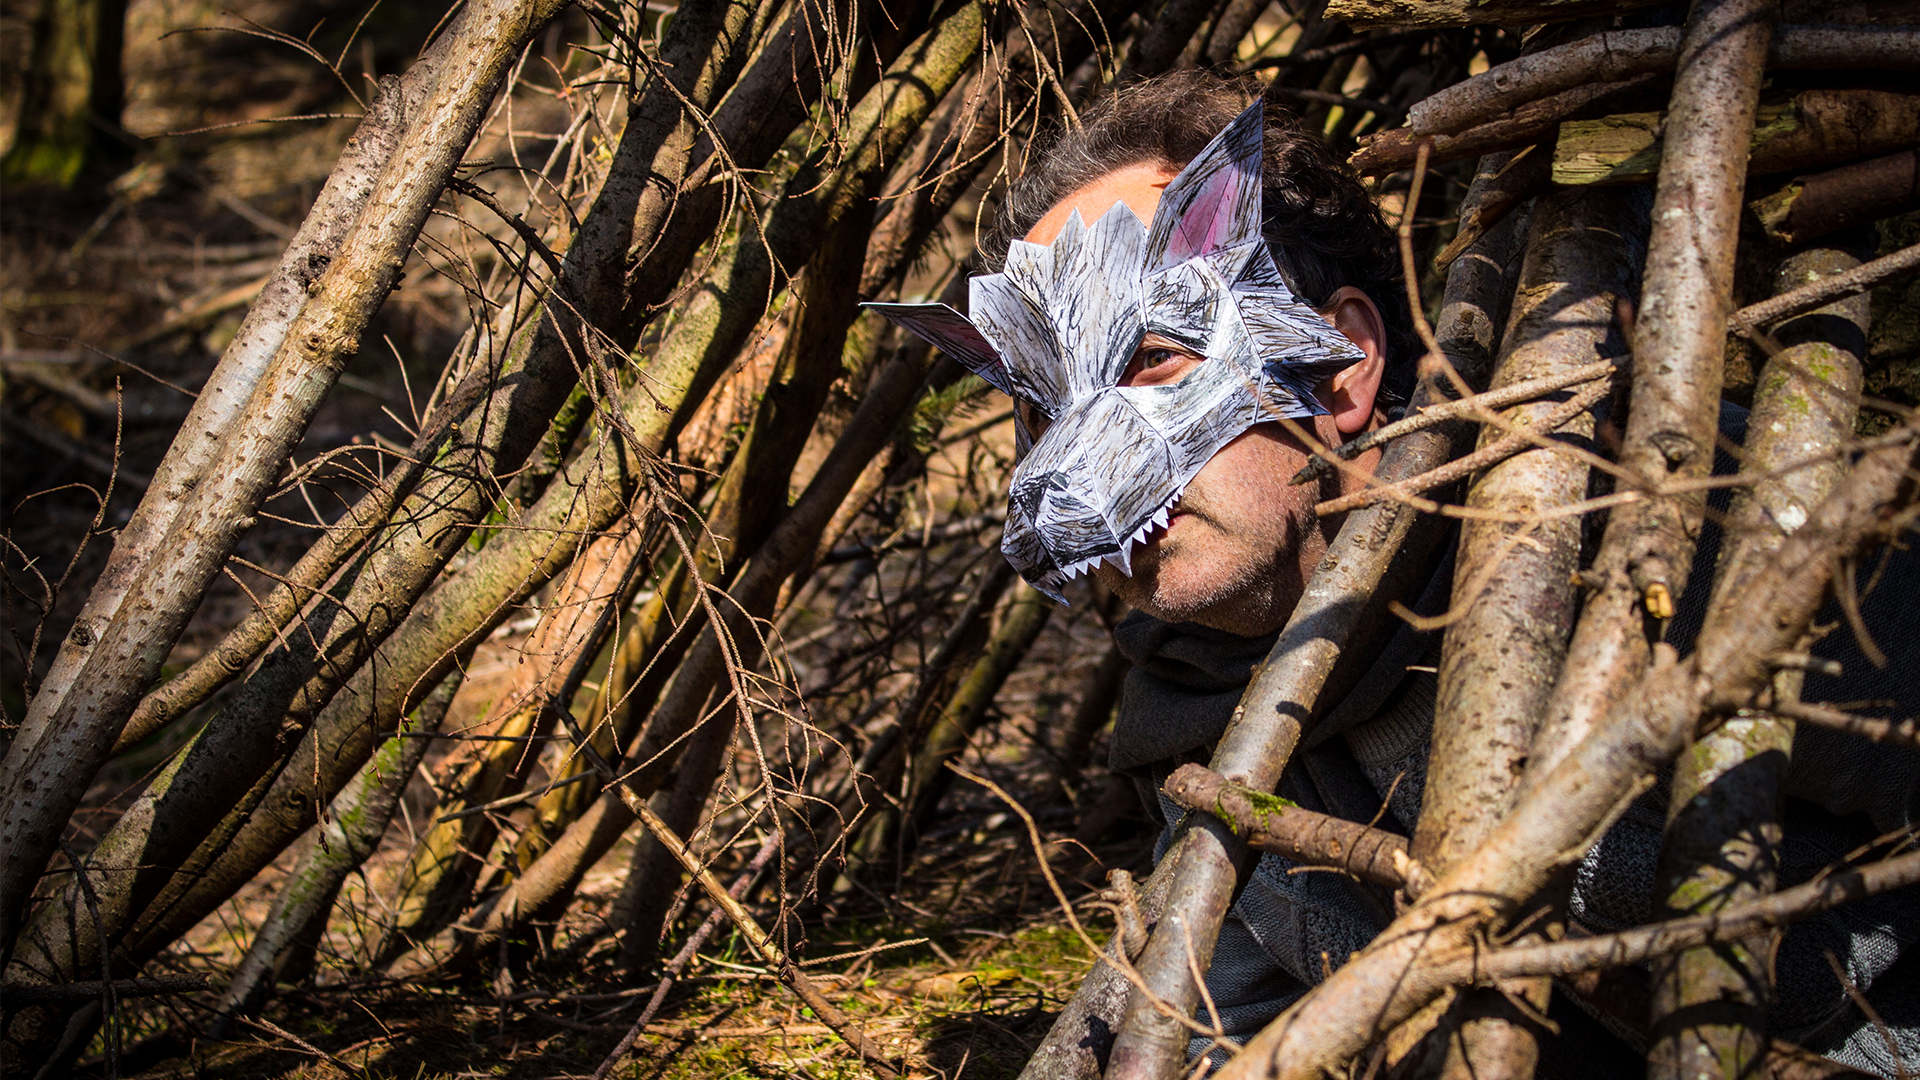 The Big Bad Wolf hiding between branches, portrayed by an actor wearing grey clothing, a grey scarf, fingerless gloves and a very intricate and geometric wolf's mask